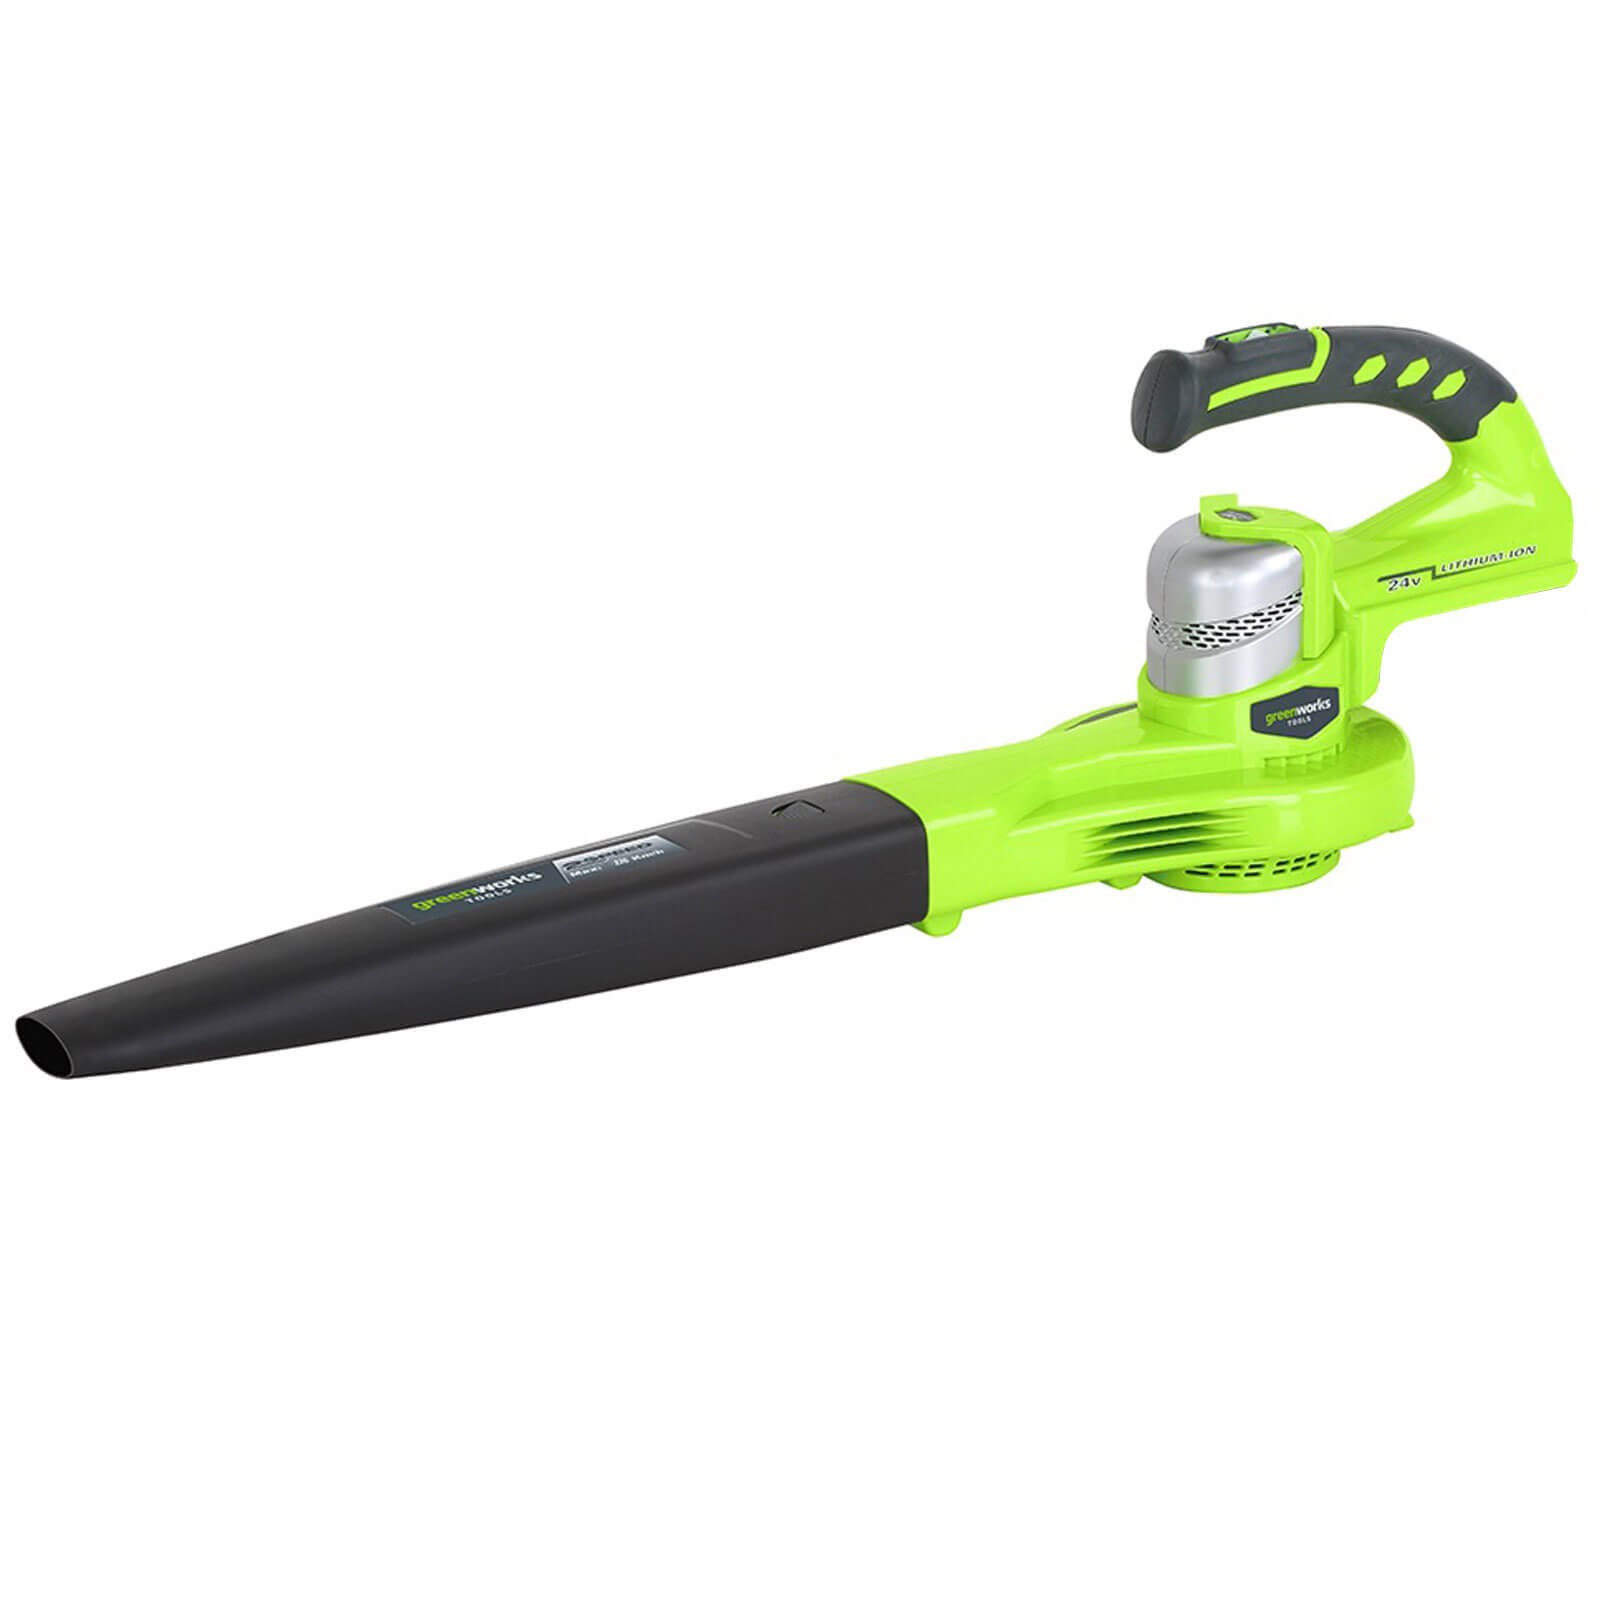 Image of Greenworks G24BL 24v Cordless Garden Leaf Blower No Batteries